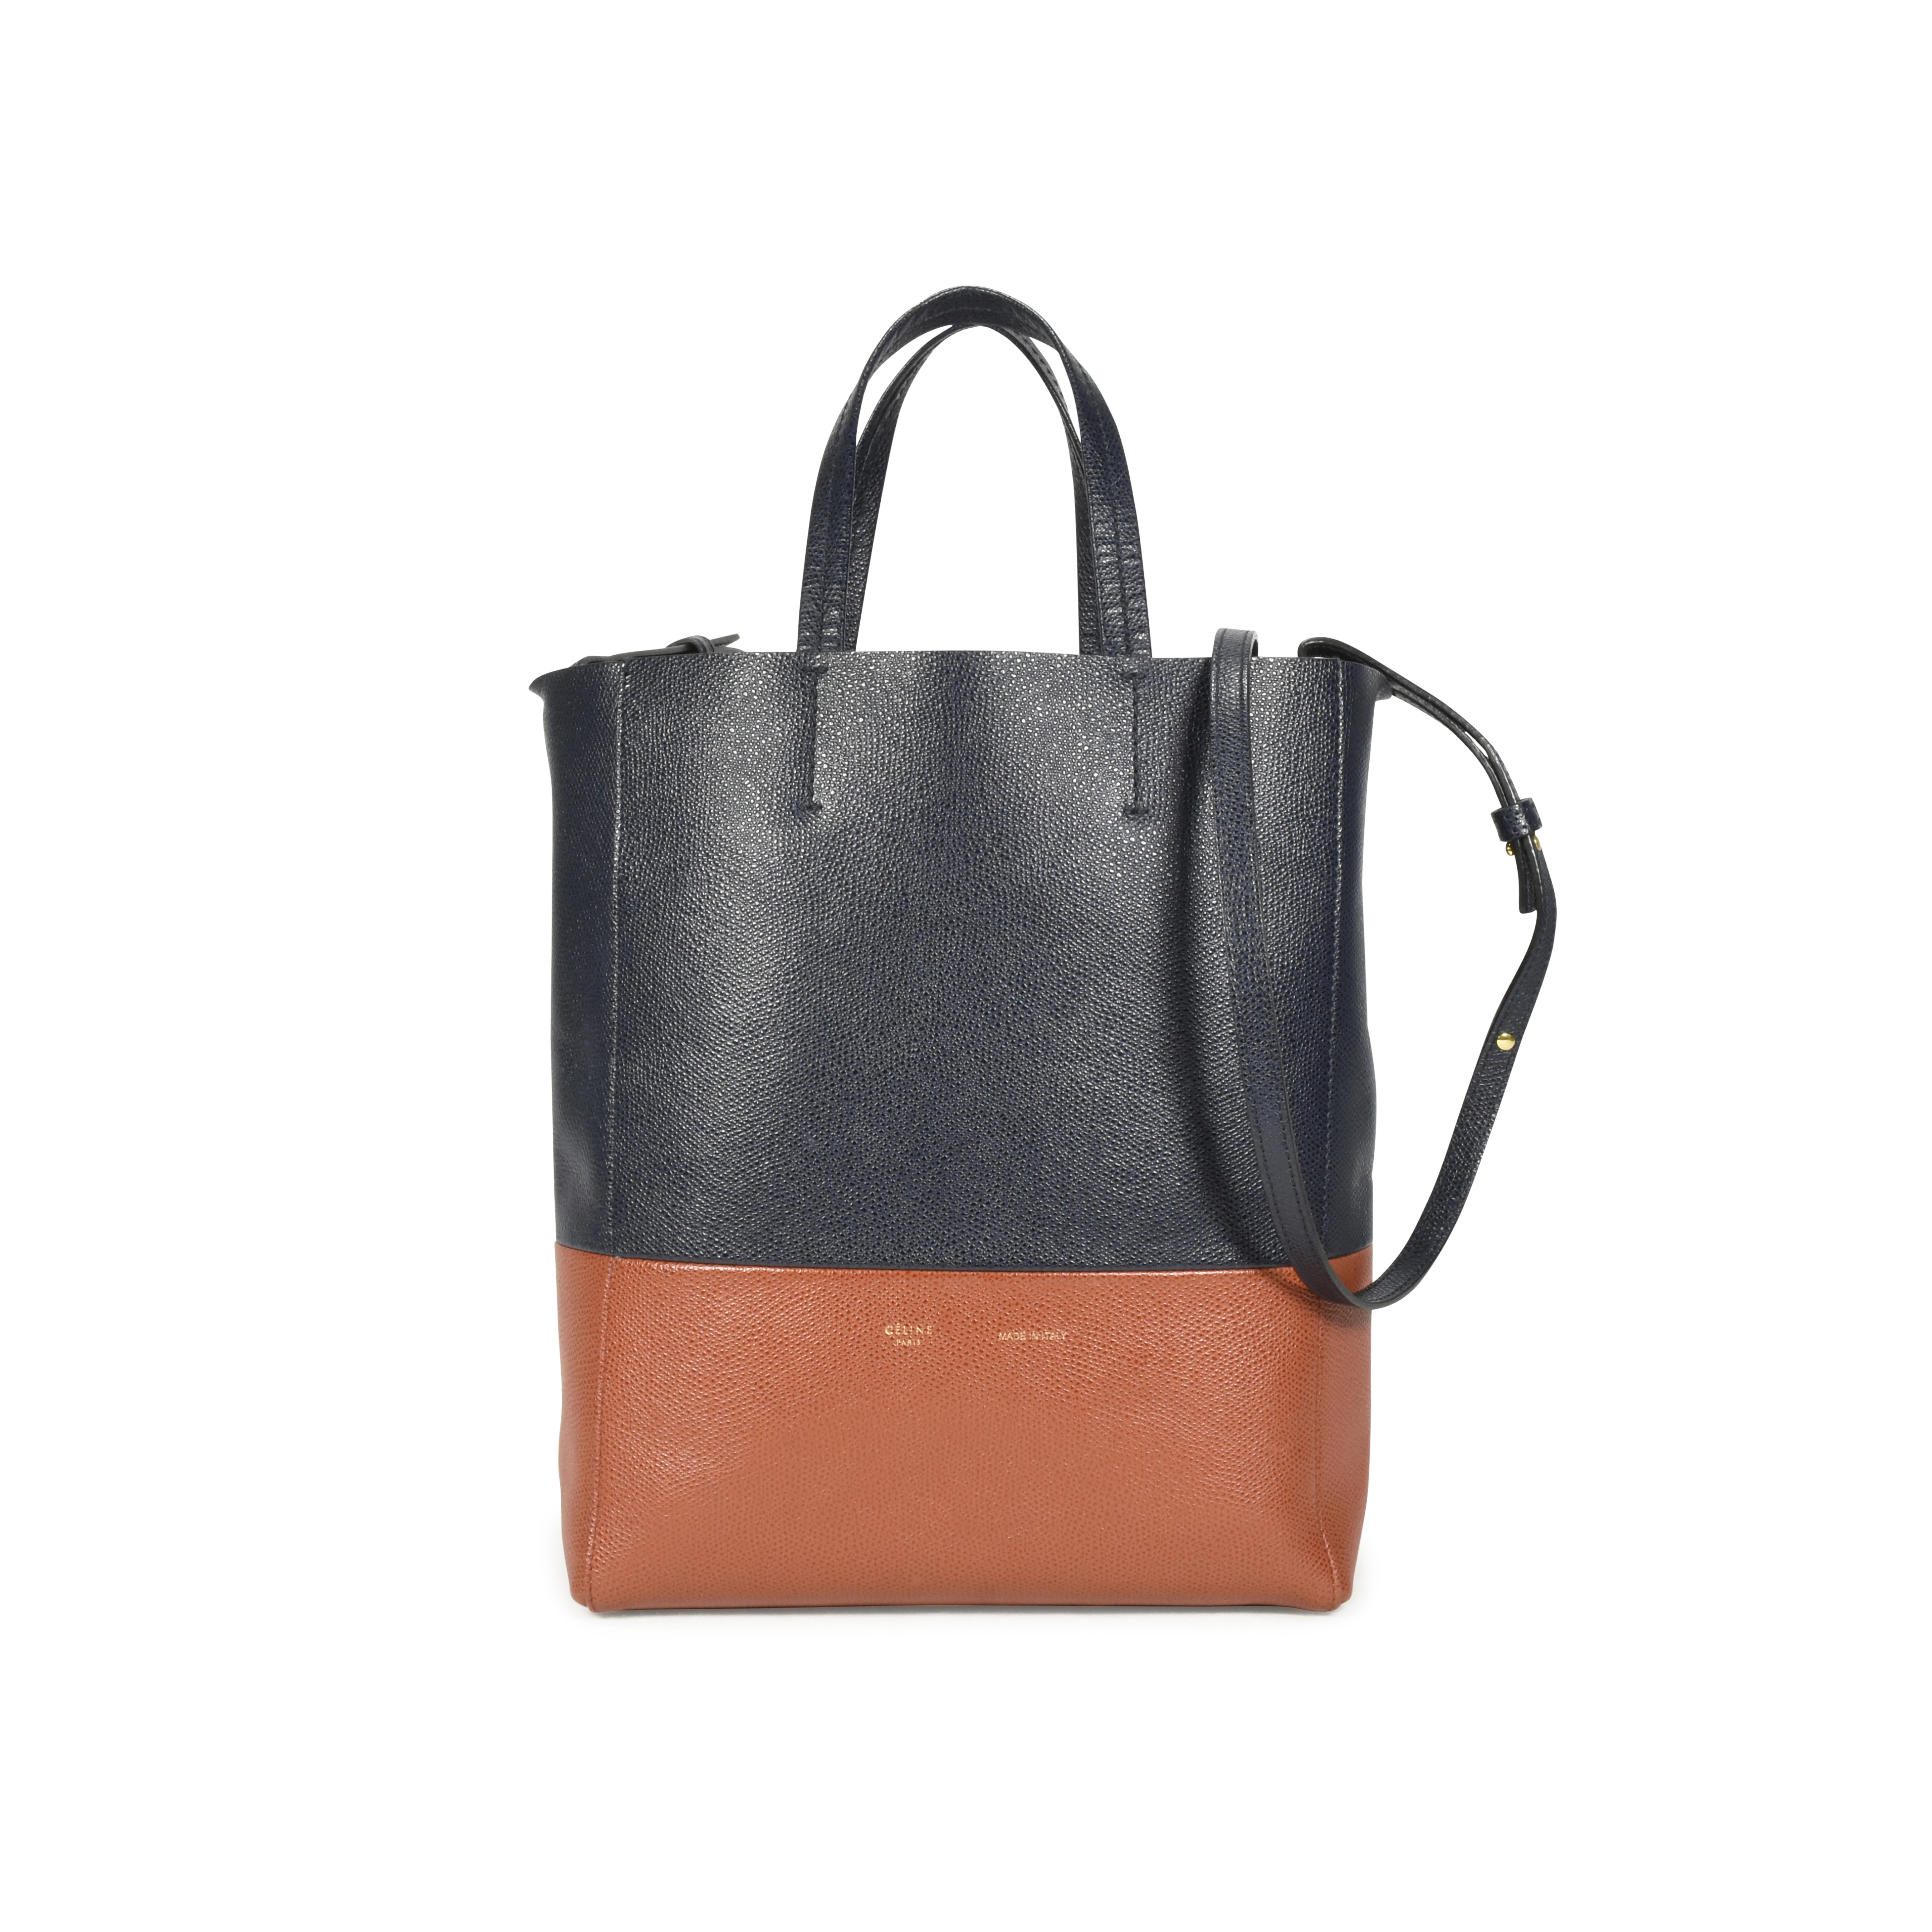 Authentic Pre Owned Céline Small Vertical Cabas Tote Bag (PSS-139-00029)    THE FIFTH COLLECTION® 989ad53882